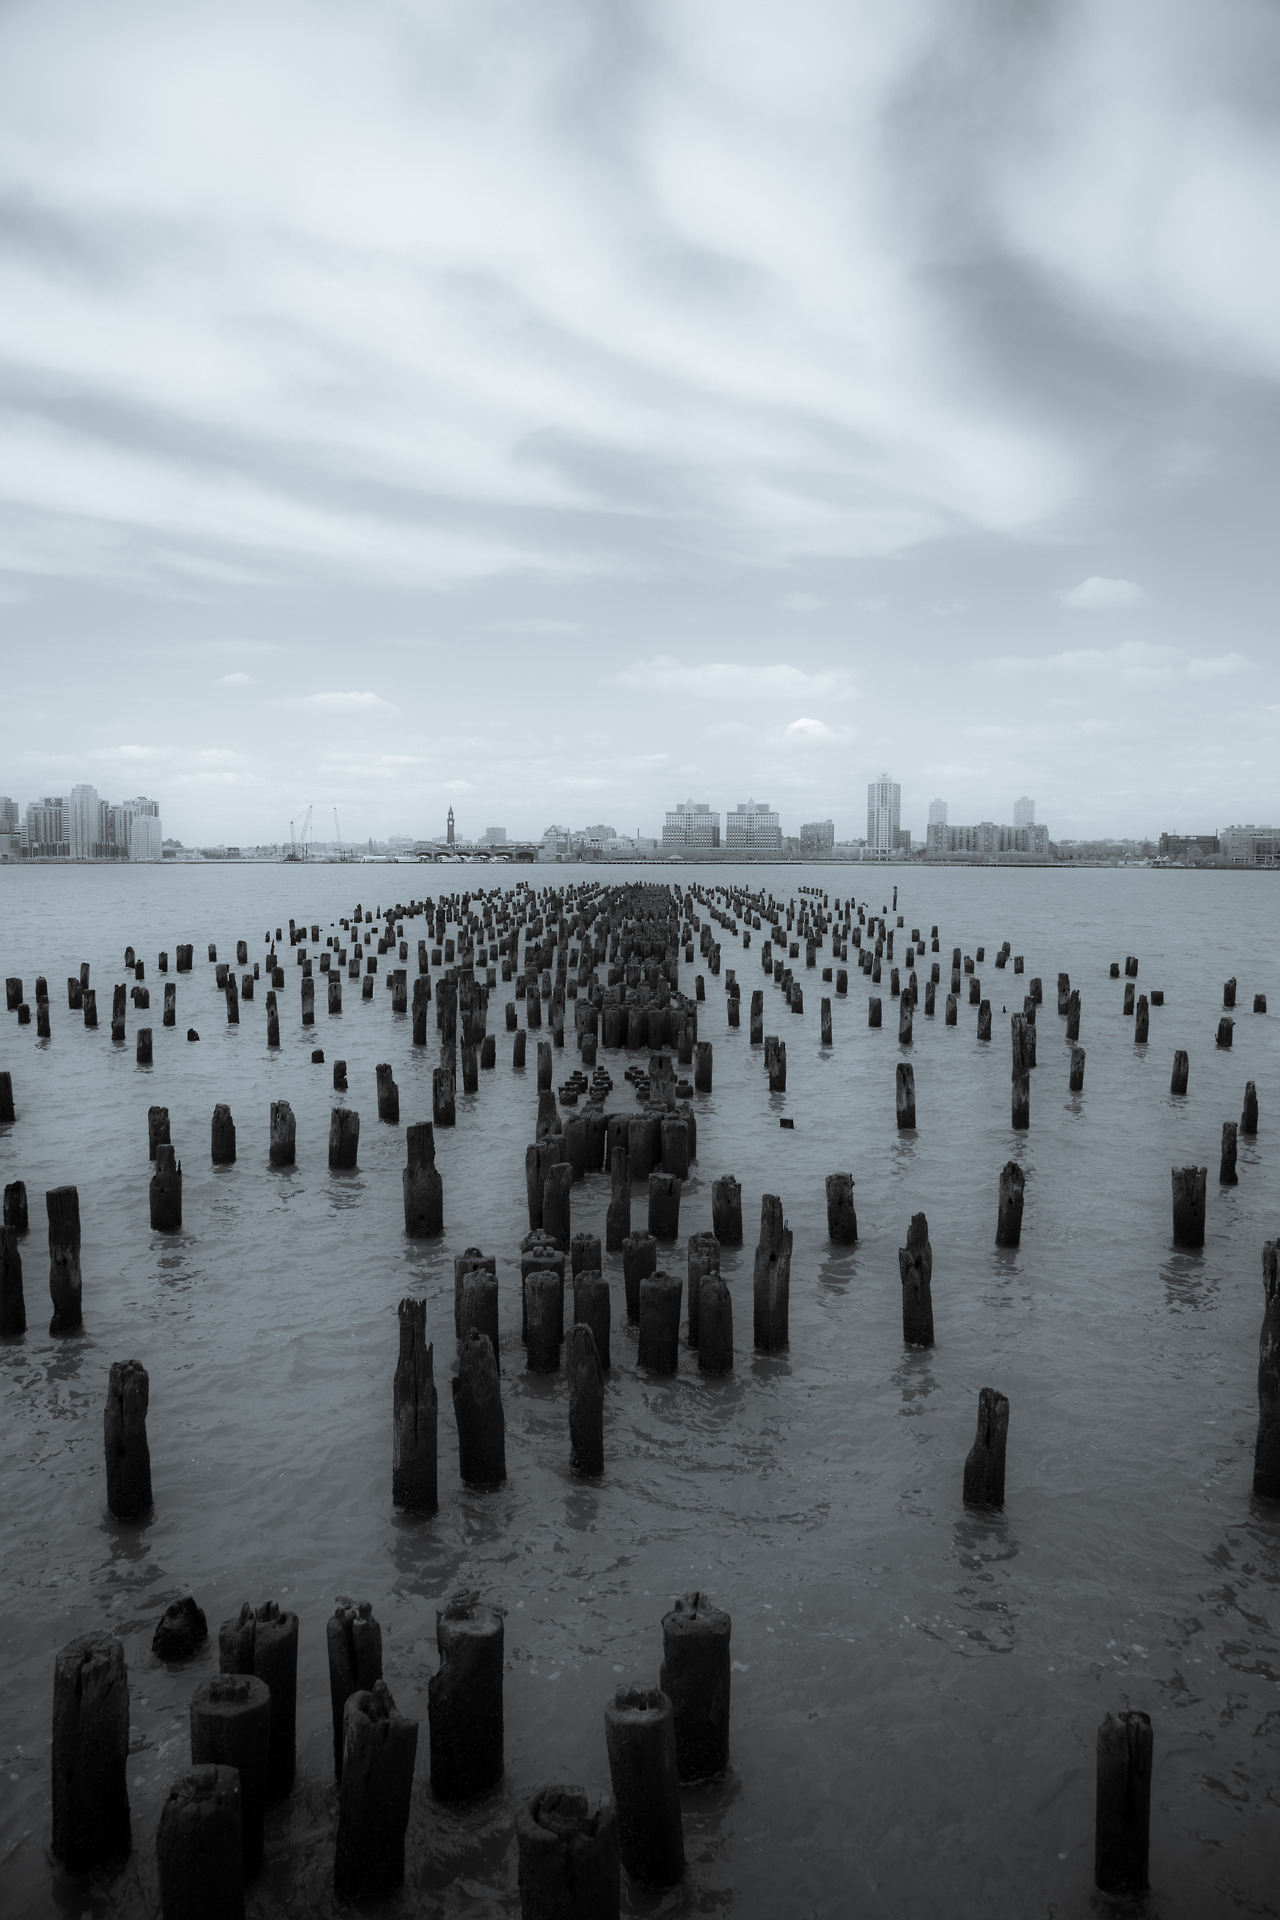 Old pier pylons, Hudson River, photograph by Ric Camcho